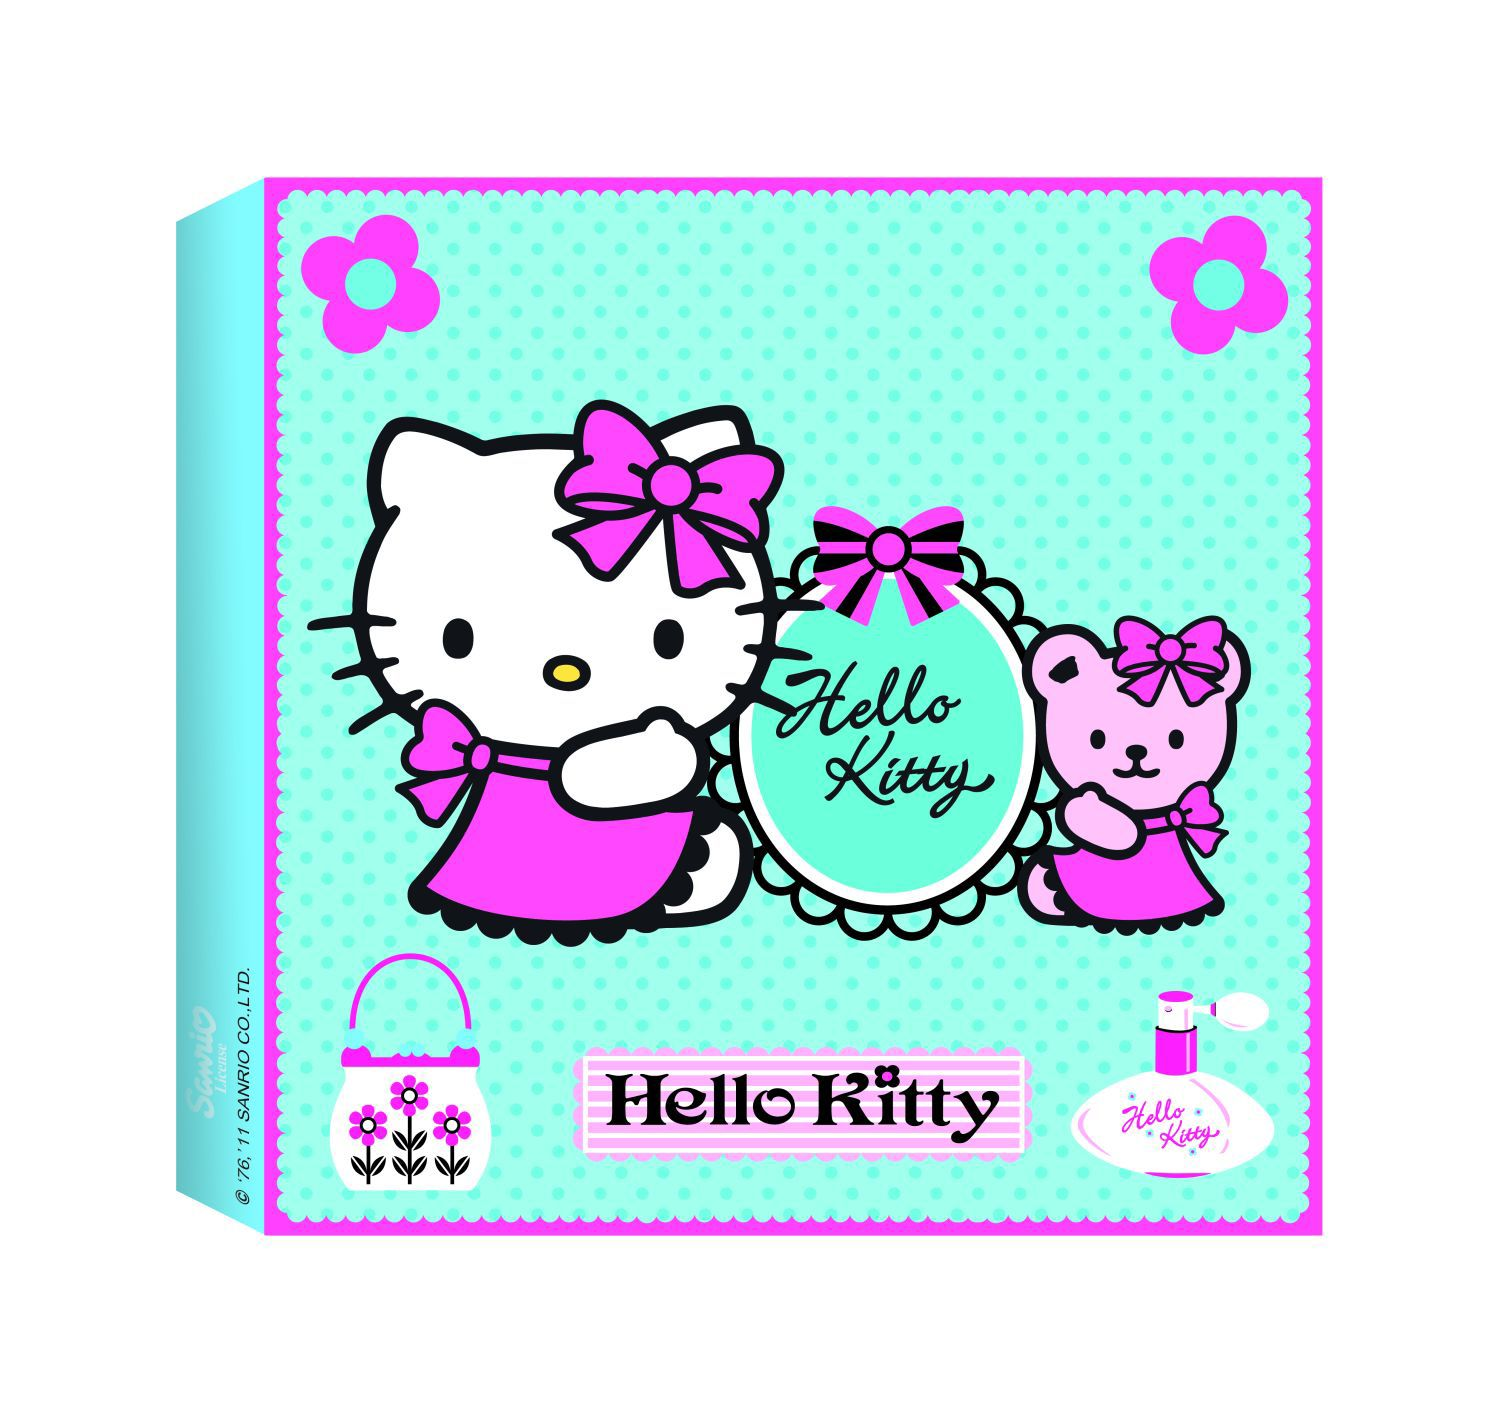 Hello Kitty Printed Canvas (30x30cm)